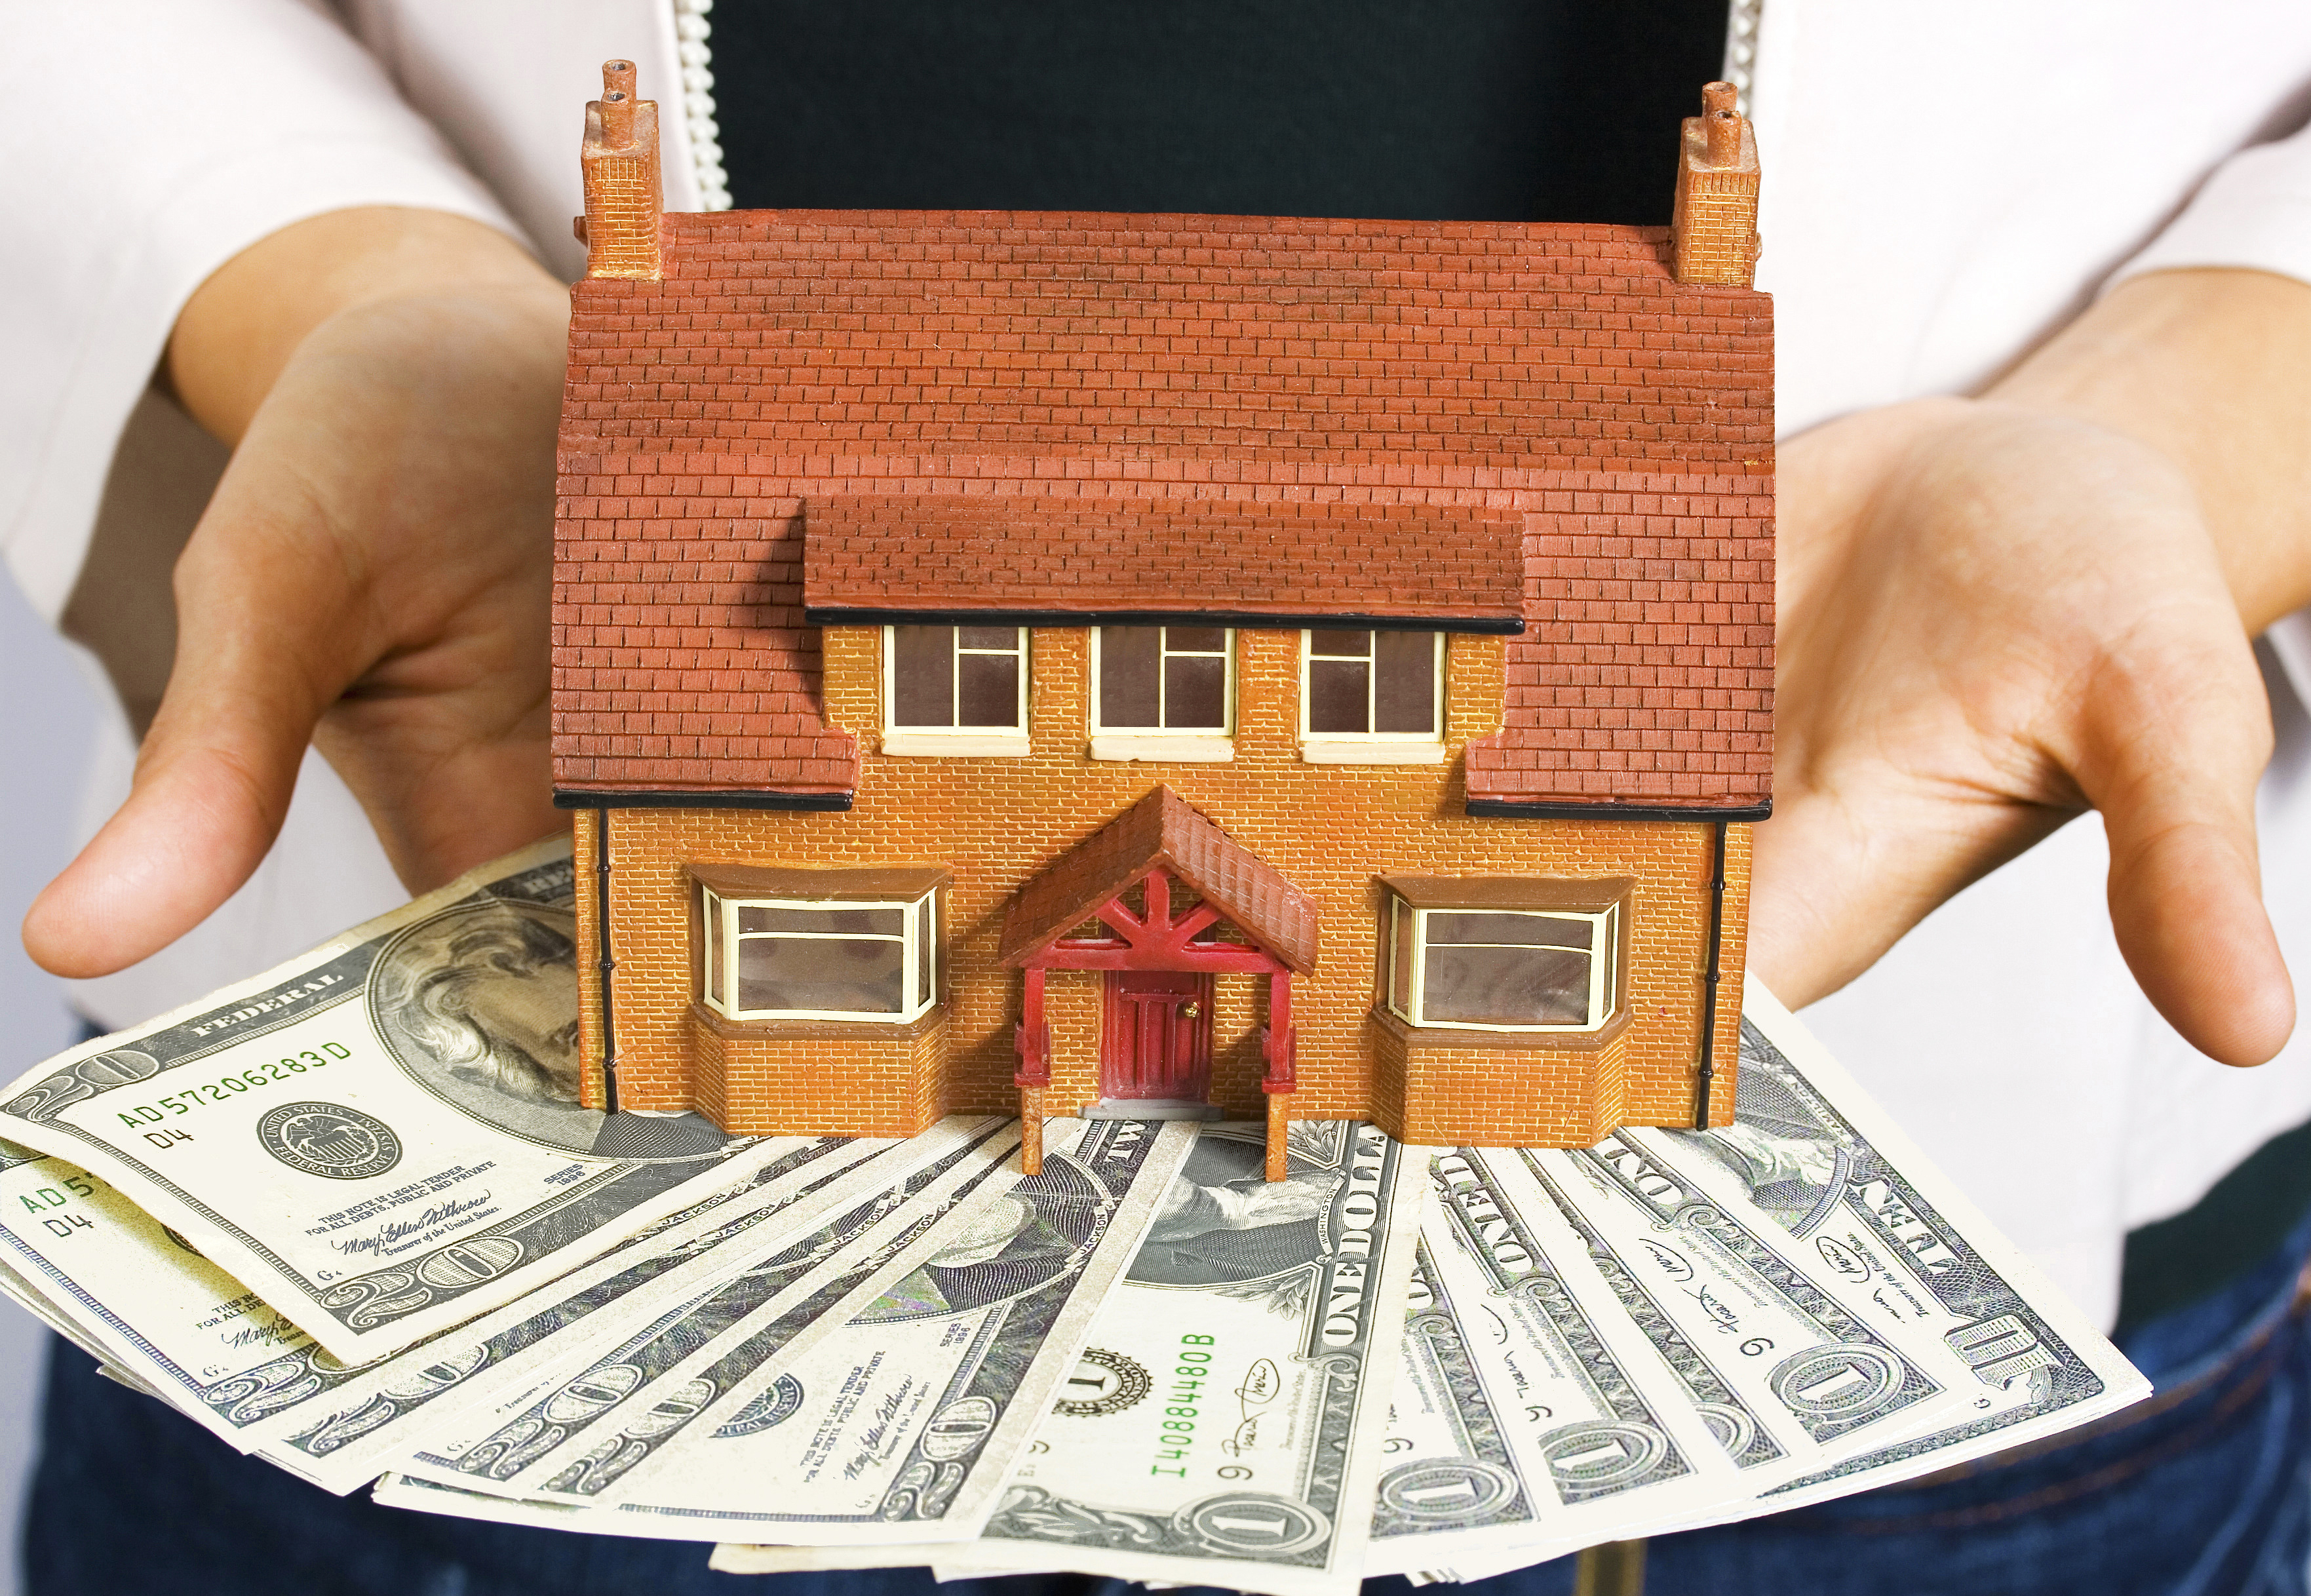 Housing Affordability: An Unsolvable Dilemma or Intentionally Unsolved?